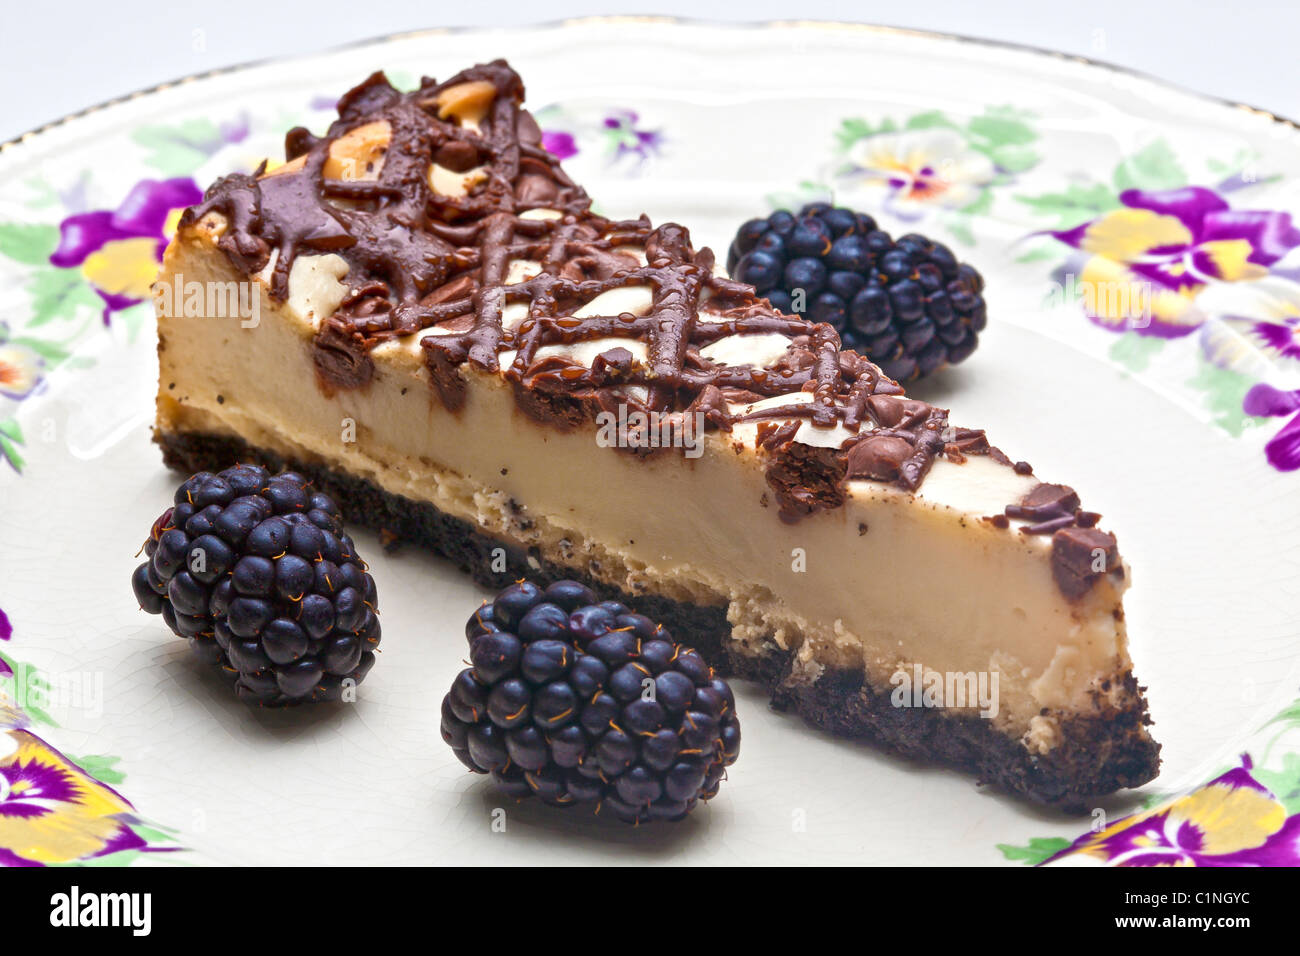 slice of chocolate covered cheesecake on decorative plate - Stock Image